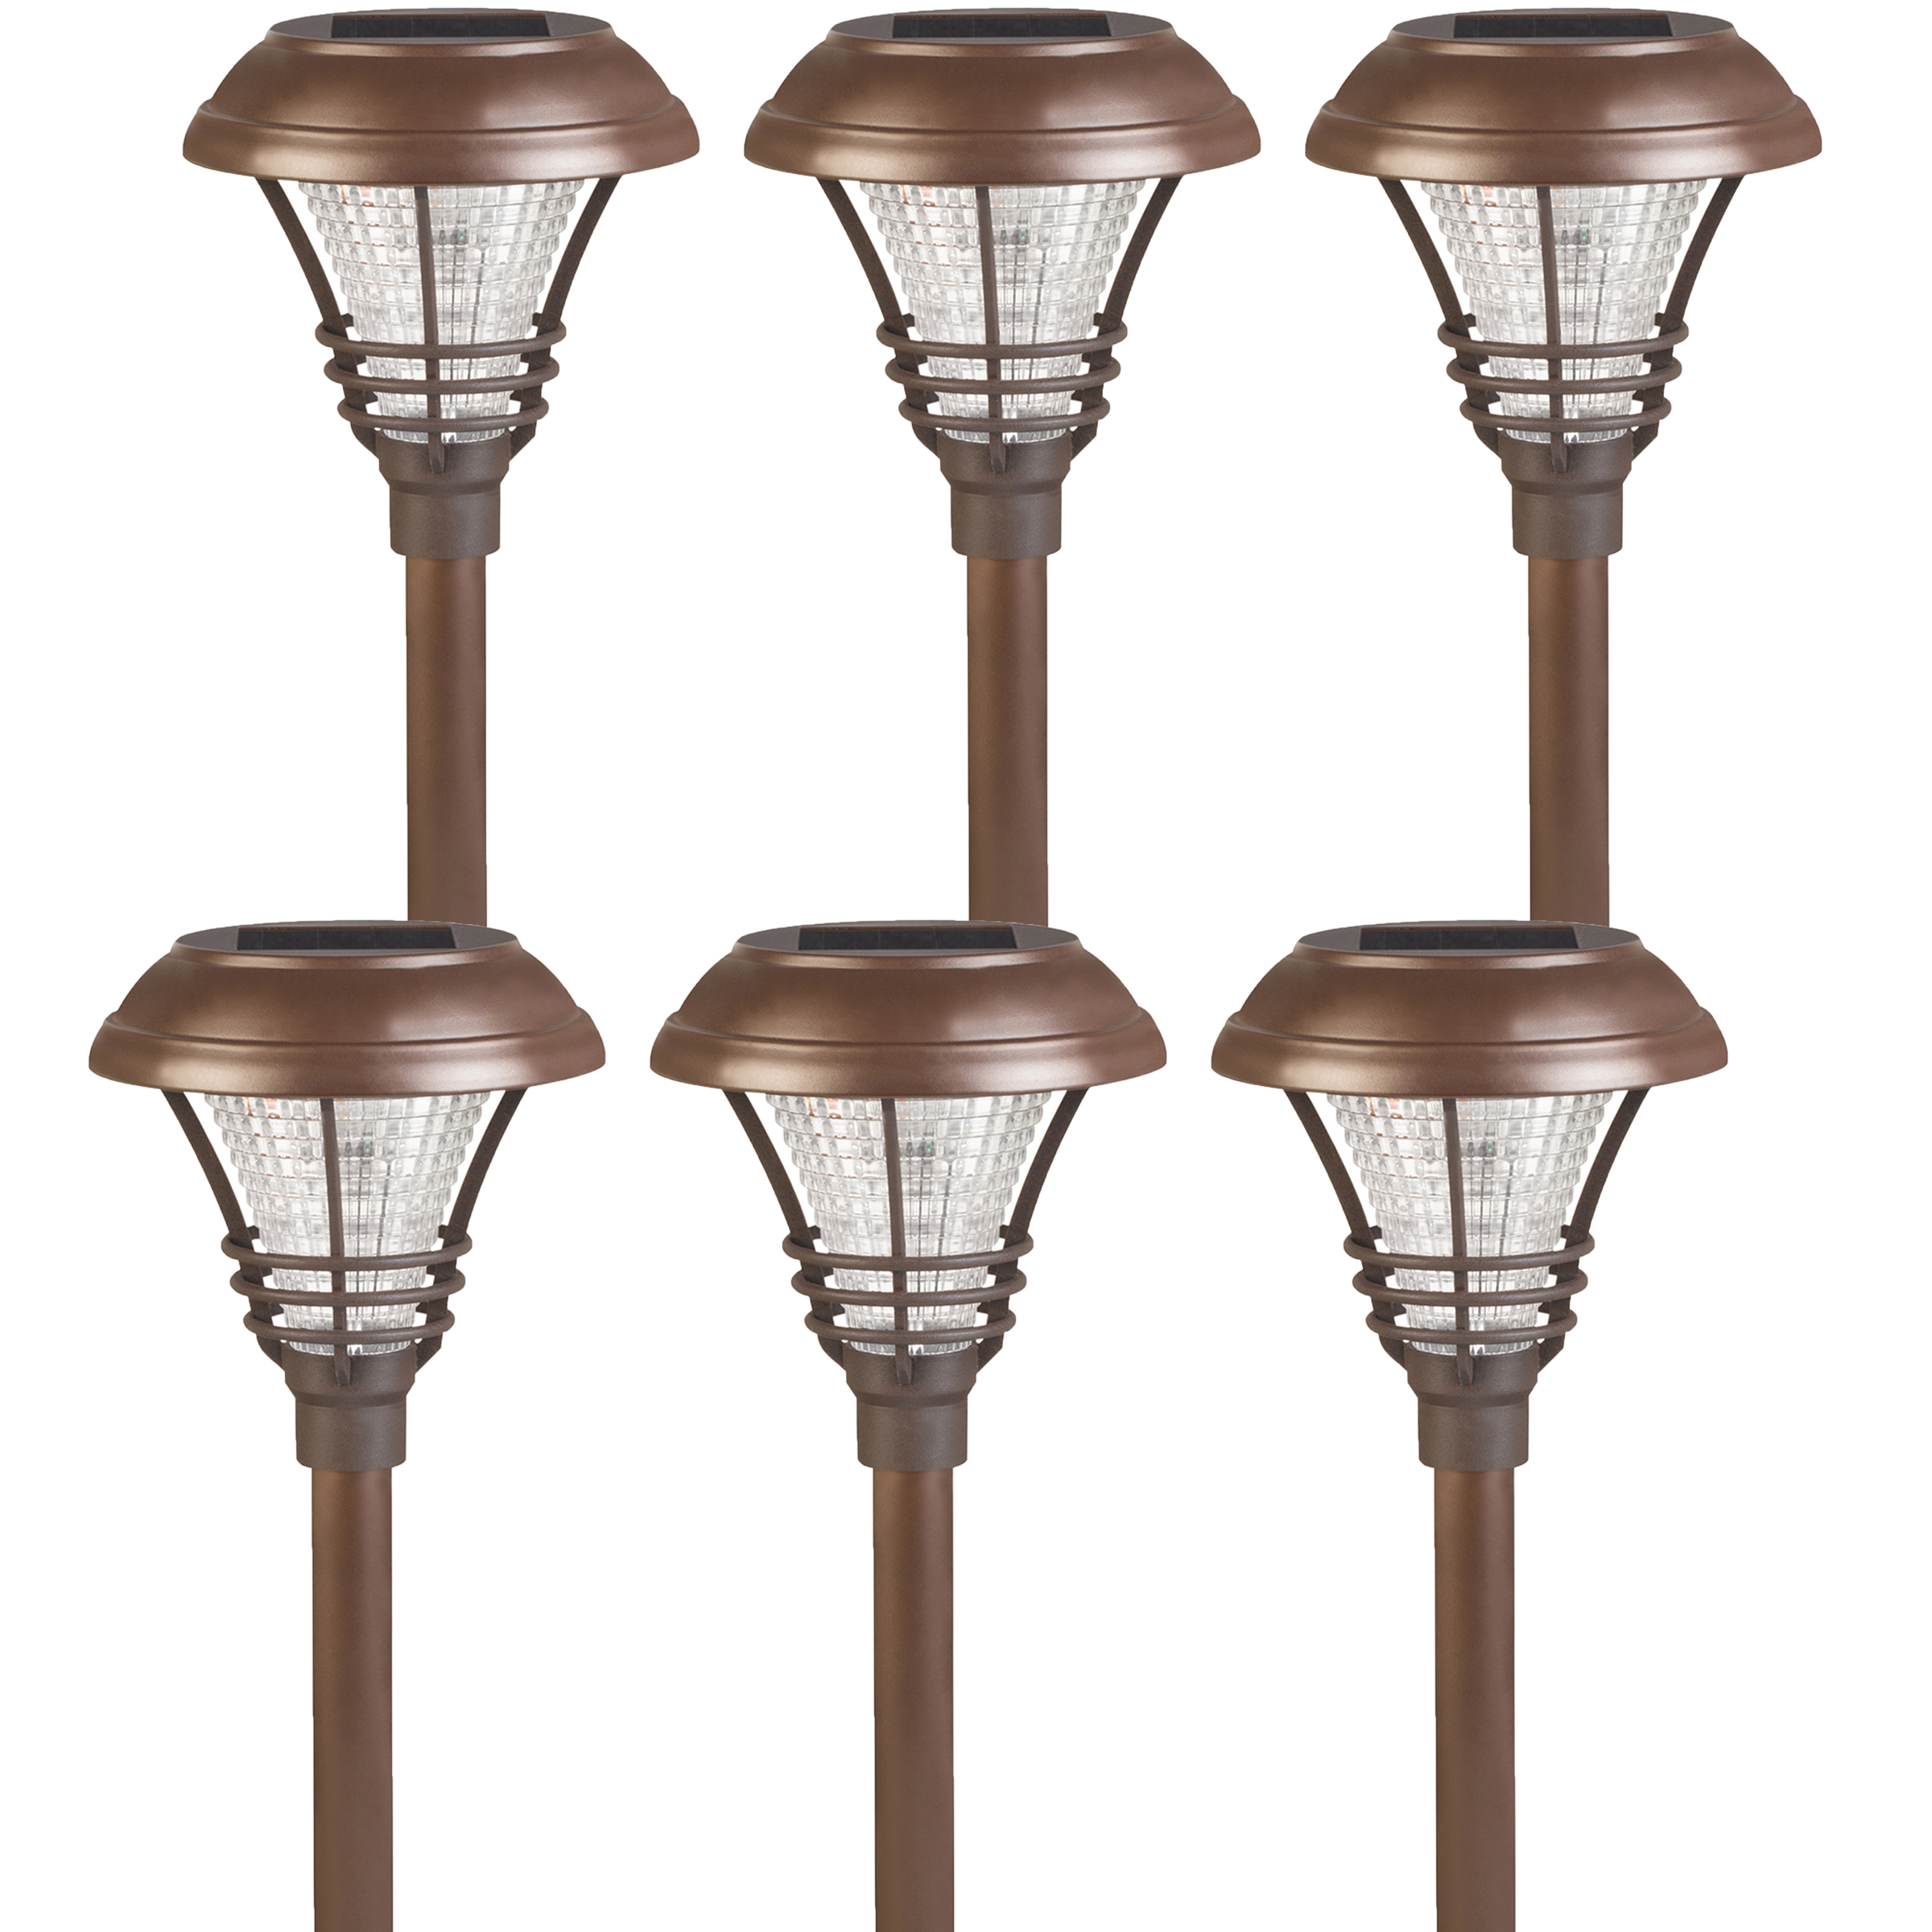 6 pack westinghouse new brown kenbury solar outdoor garden led stake path lig. Black Bedroom Furniture Sets. Home Design Ideas